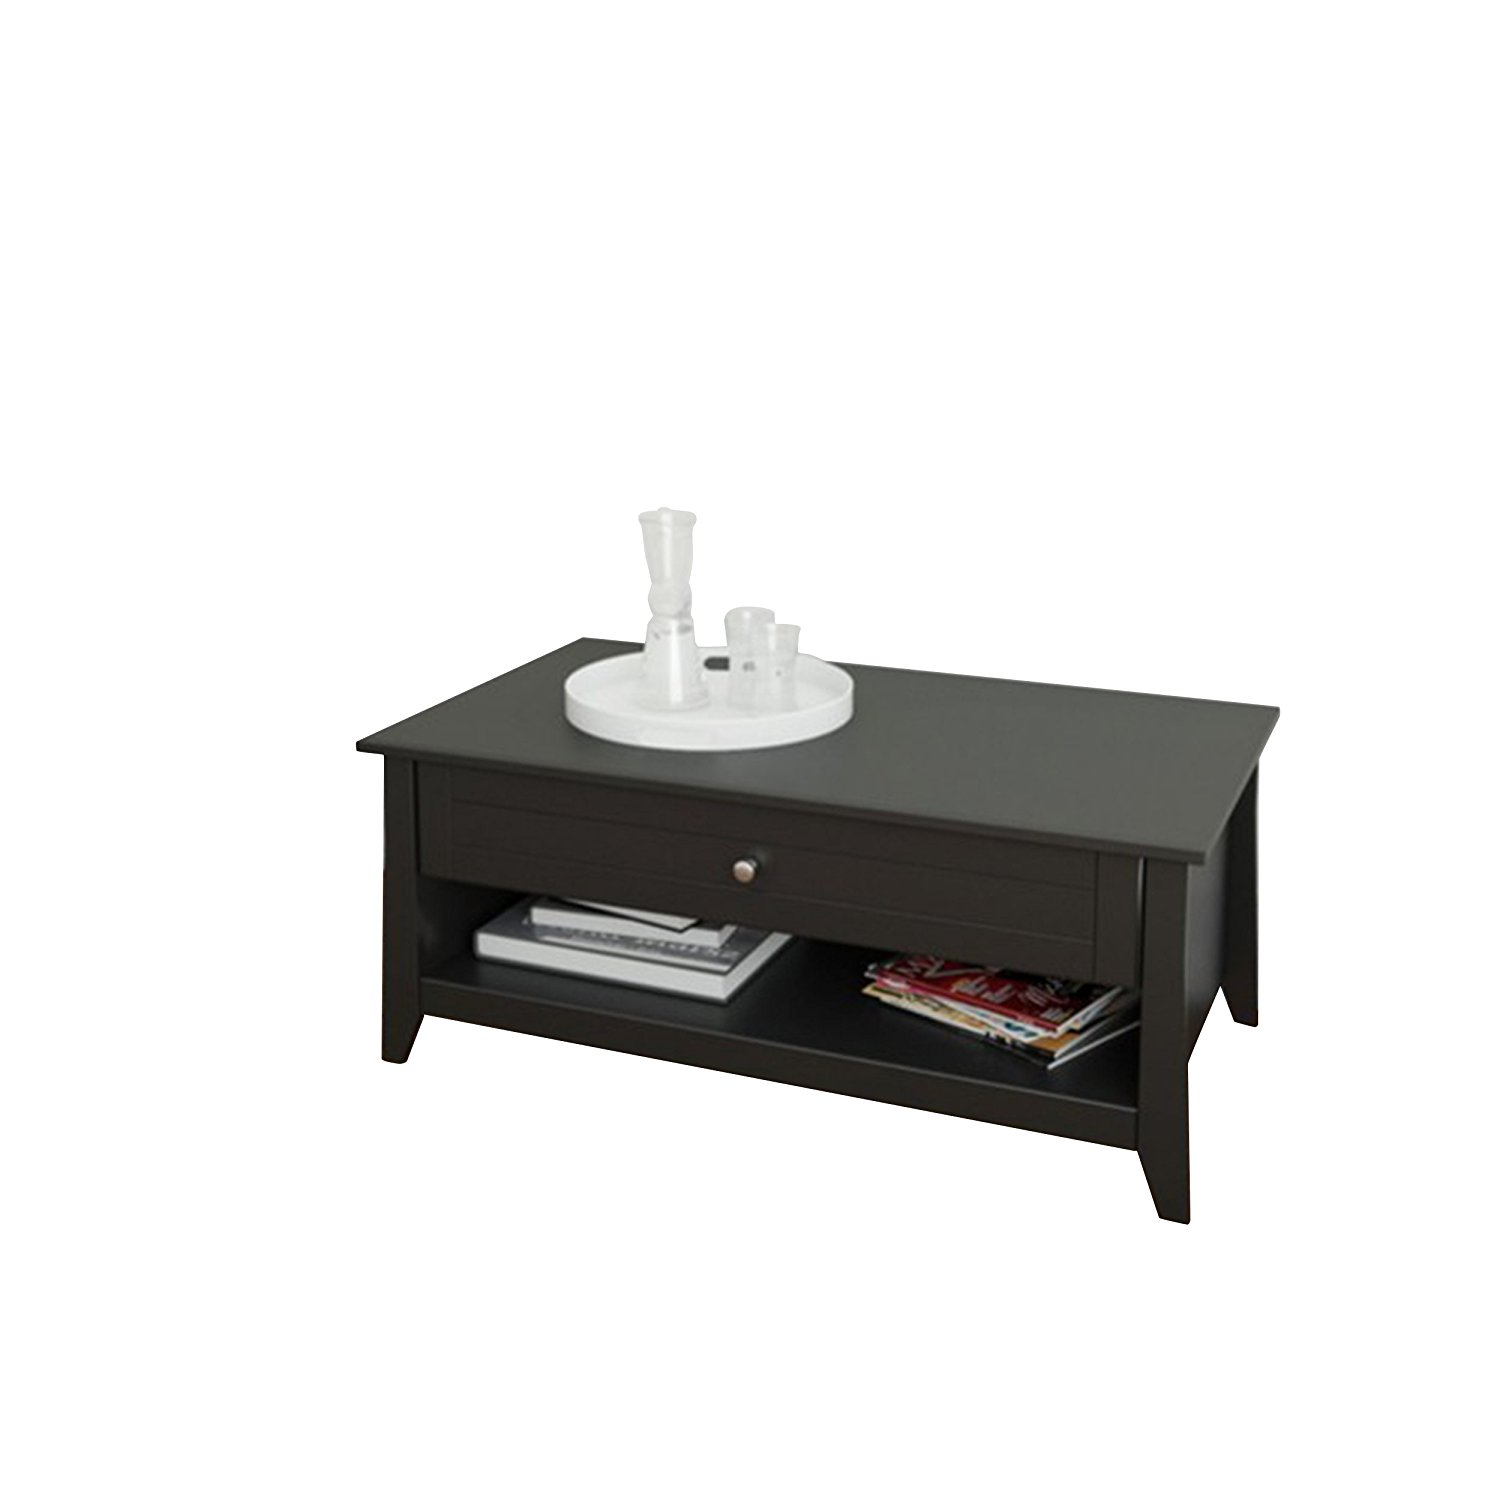 Cheap Dvd Storage Table find Dvd Storage Table deals on line at